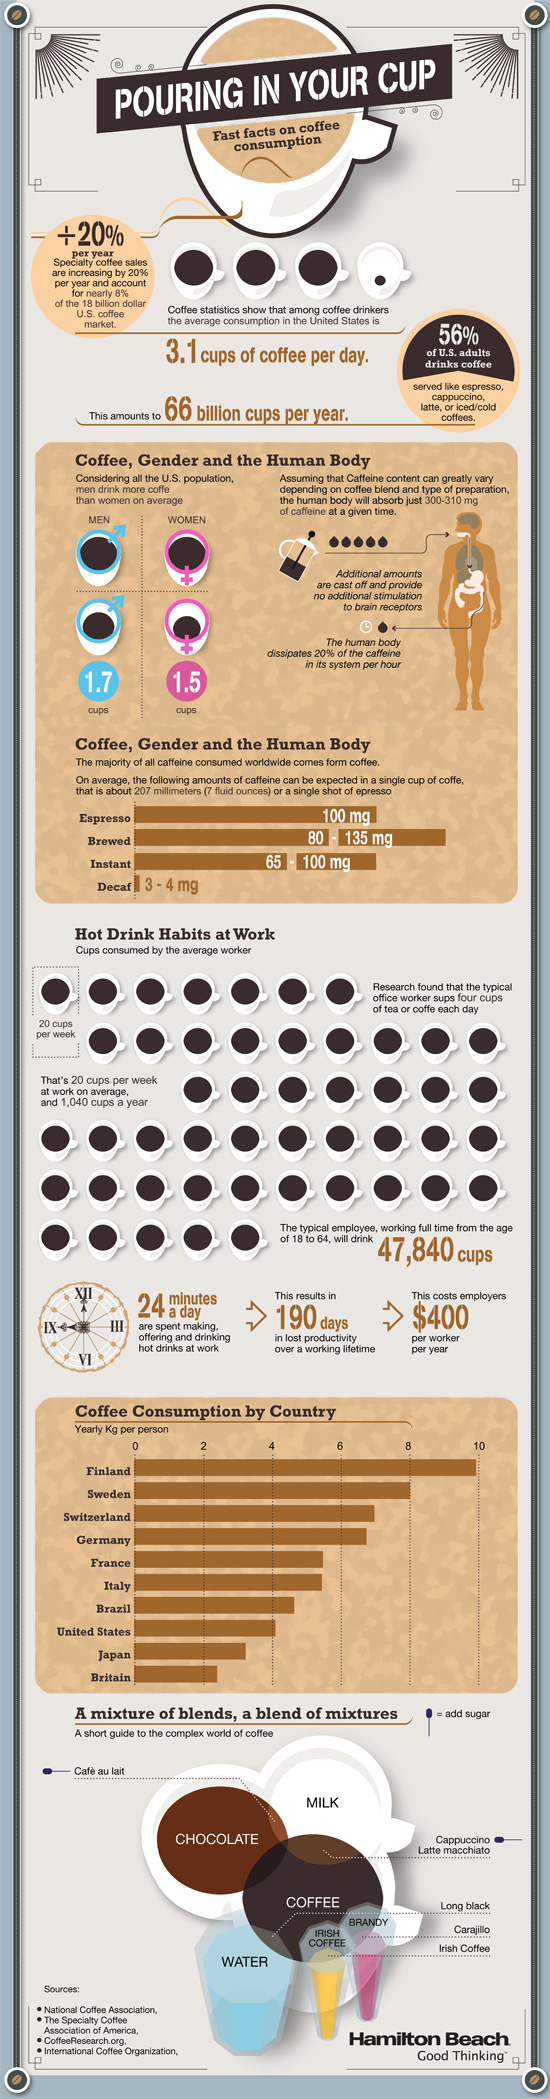 Coffee Facts and Statistics List of 52 Catchy Coffee Slogans and Great Taglines